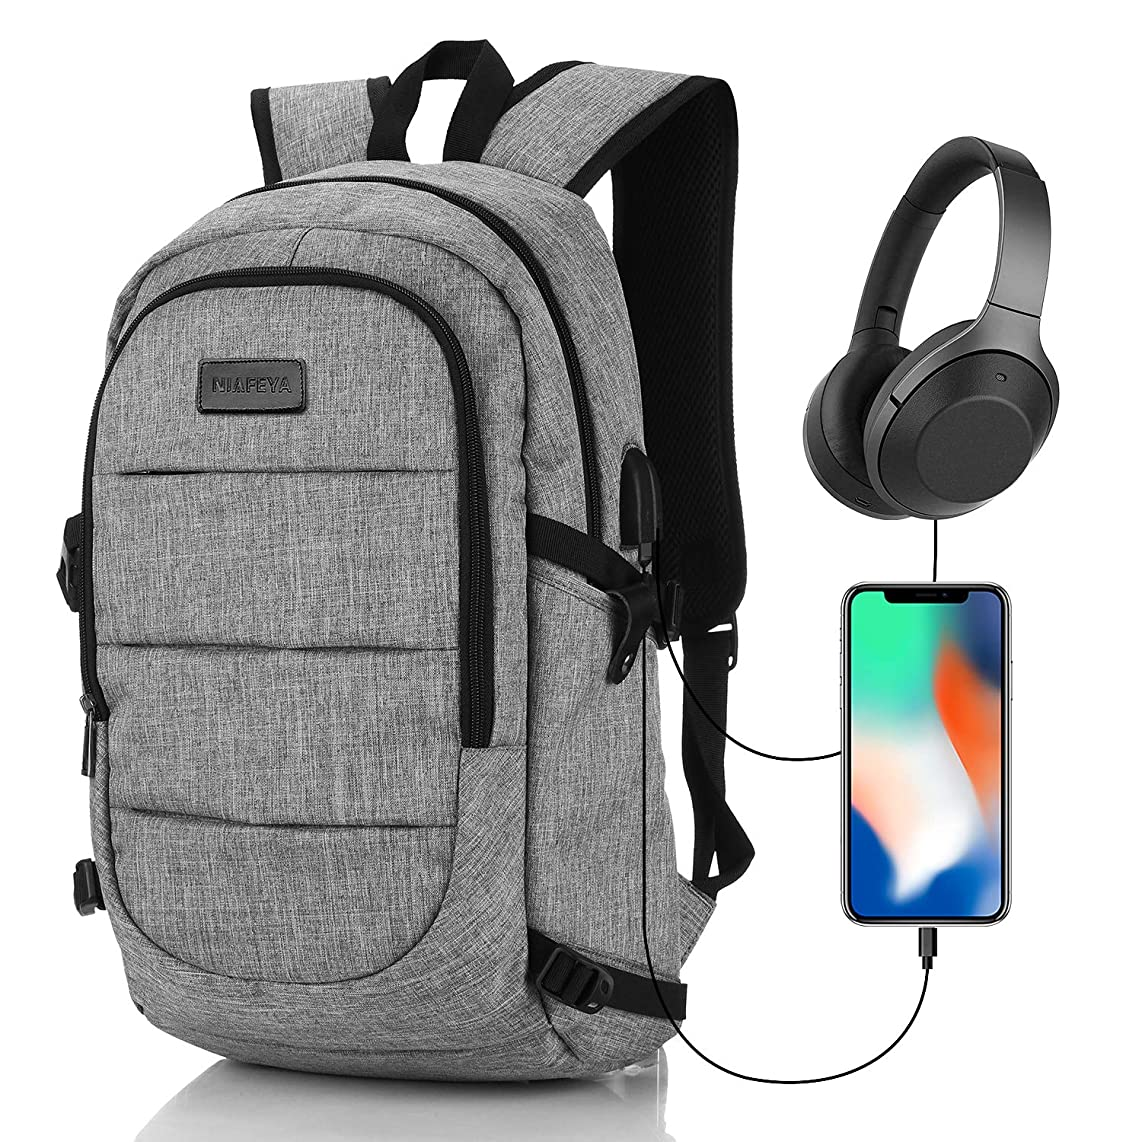 NIAFEYA Laptop Backpack, Travel Business School Laptop Outdoor Backpack, Lightweight Waterproof with USB Charging Port Headphone Hole, for Women Men Student, Fit 15.6 Inch Laptop Computer - Gray